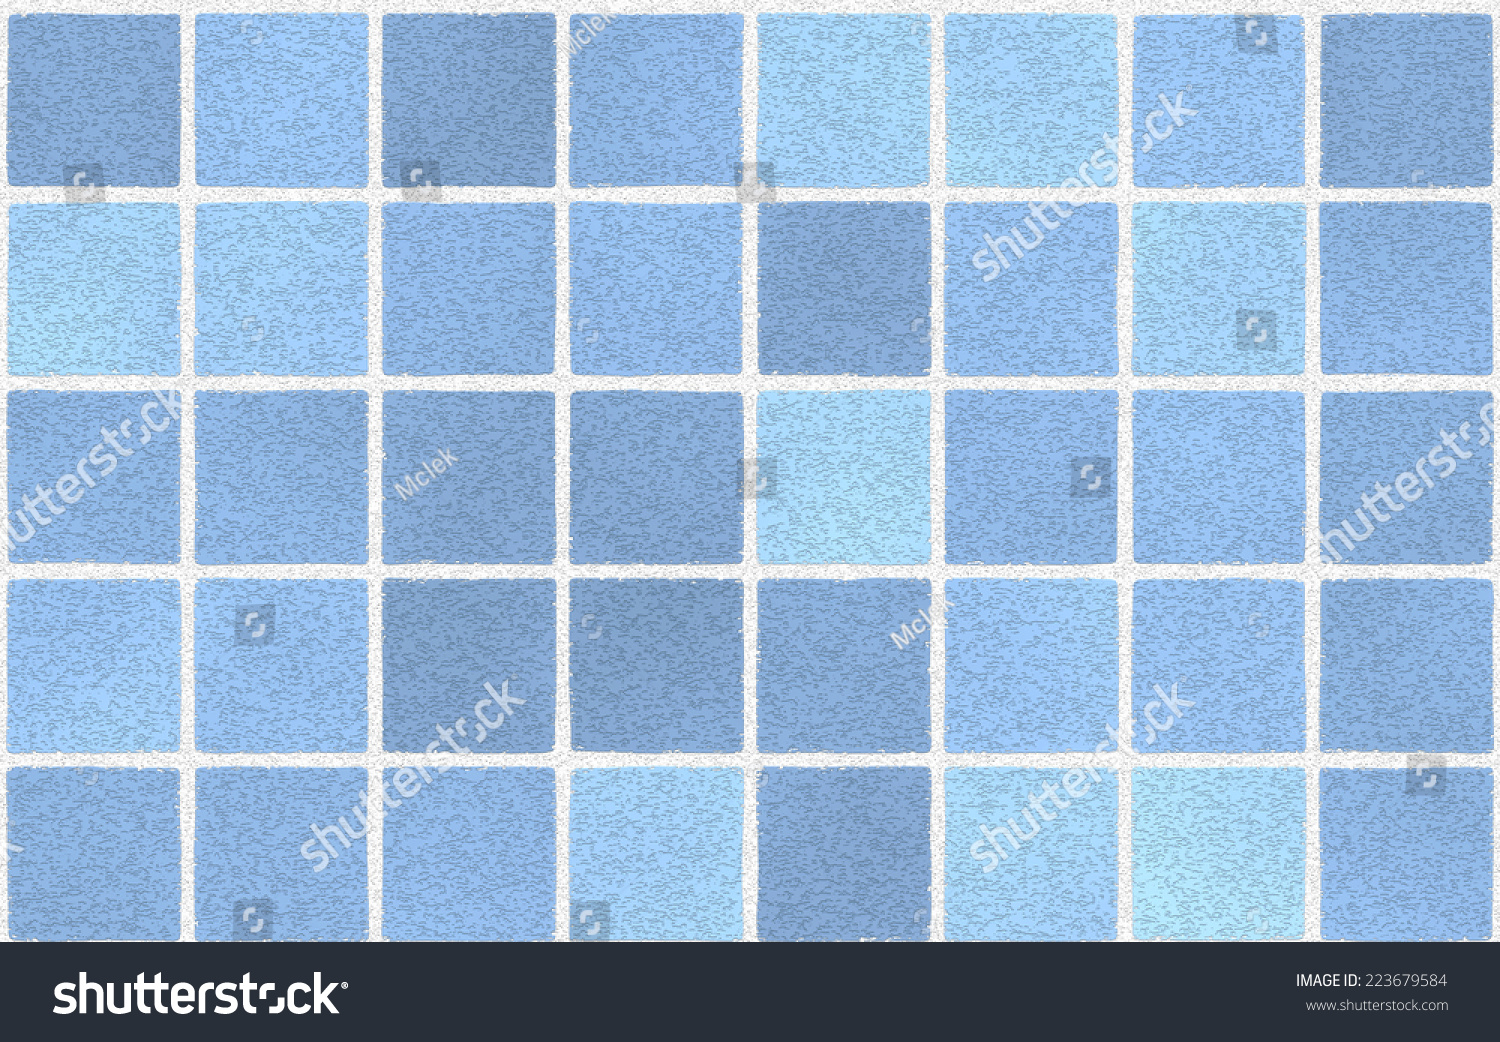 Bathroom Tiles Background seamless mosaic tiles background texture light stock illustration